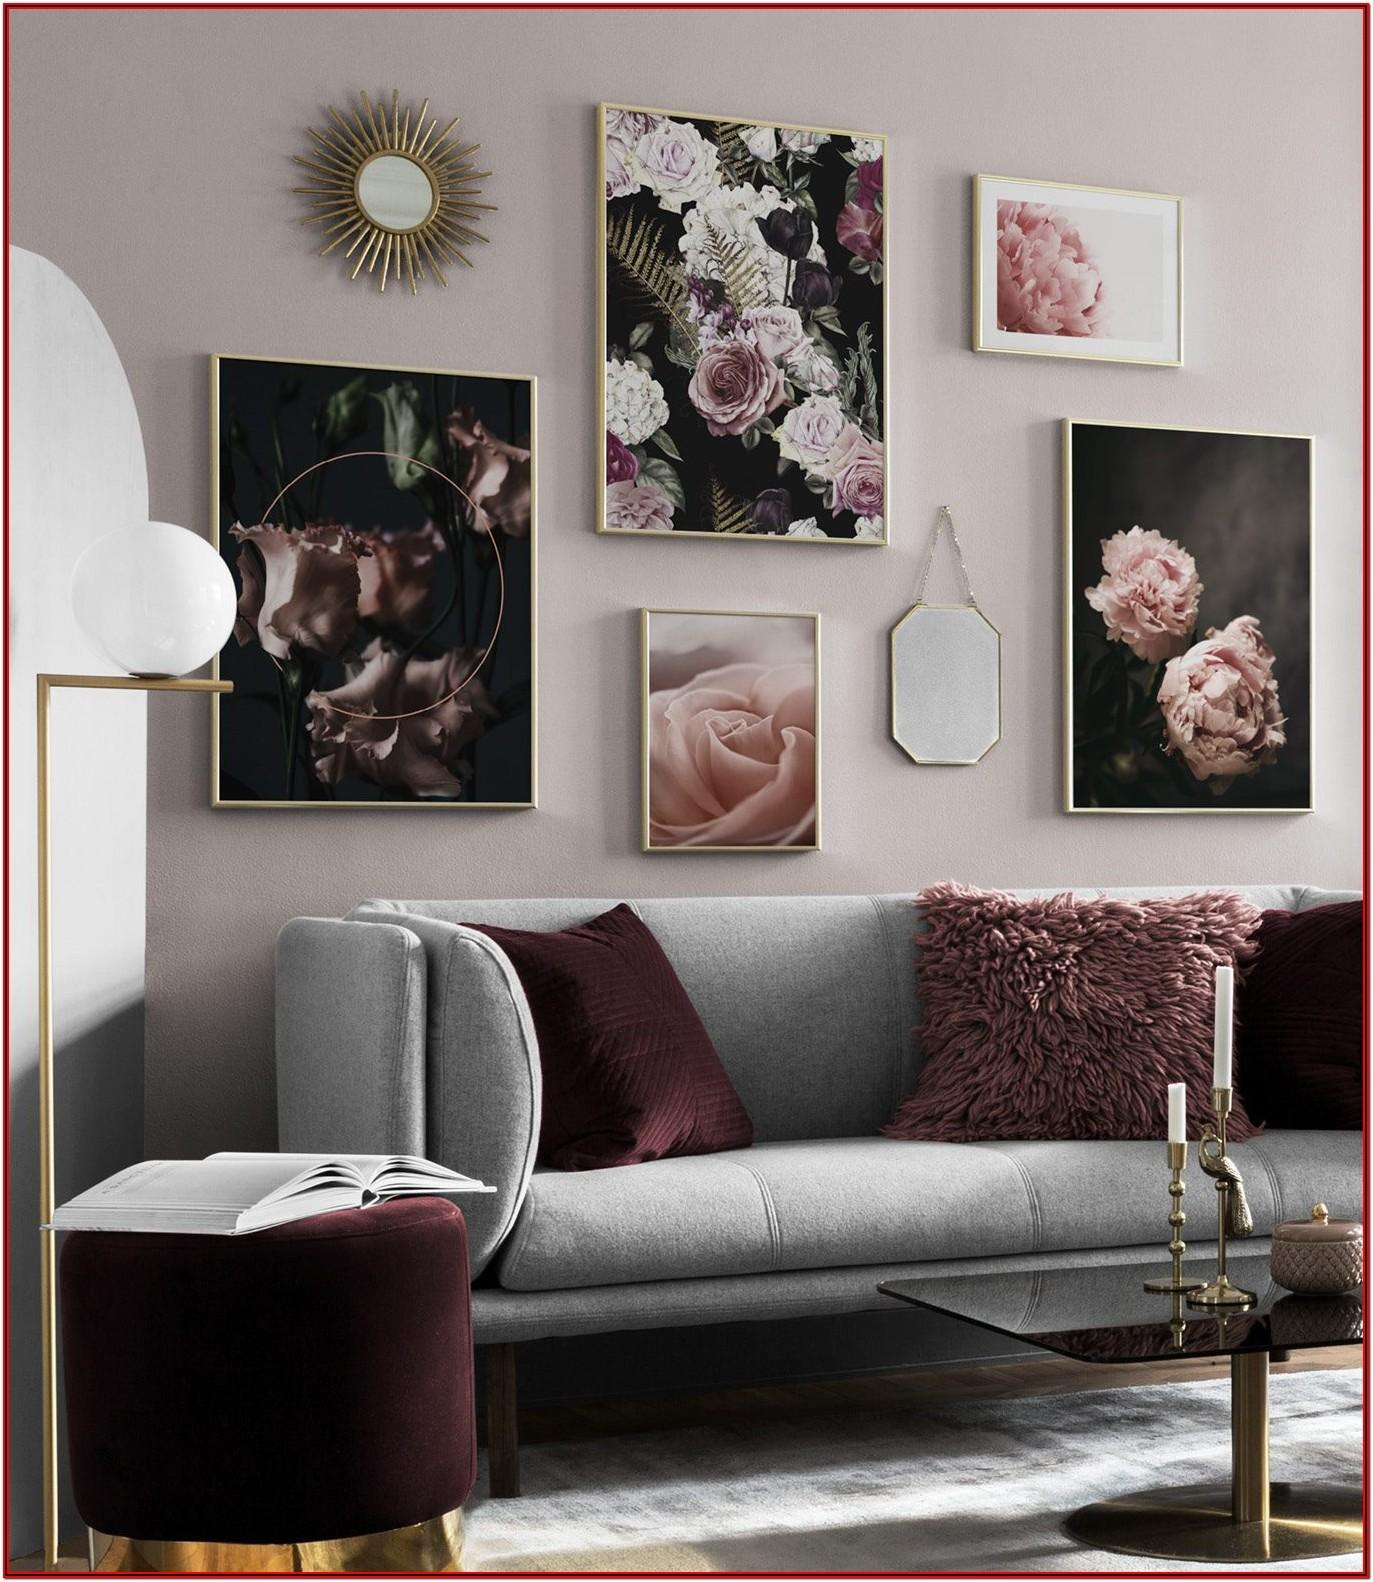 Living Room Photo Gallery Wall Ideas